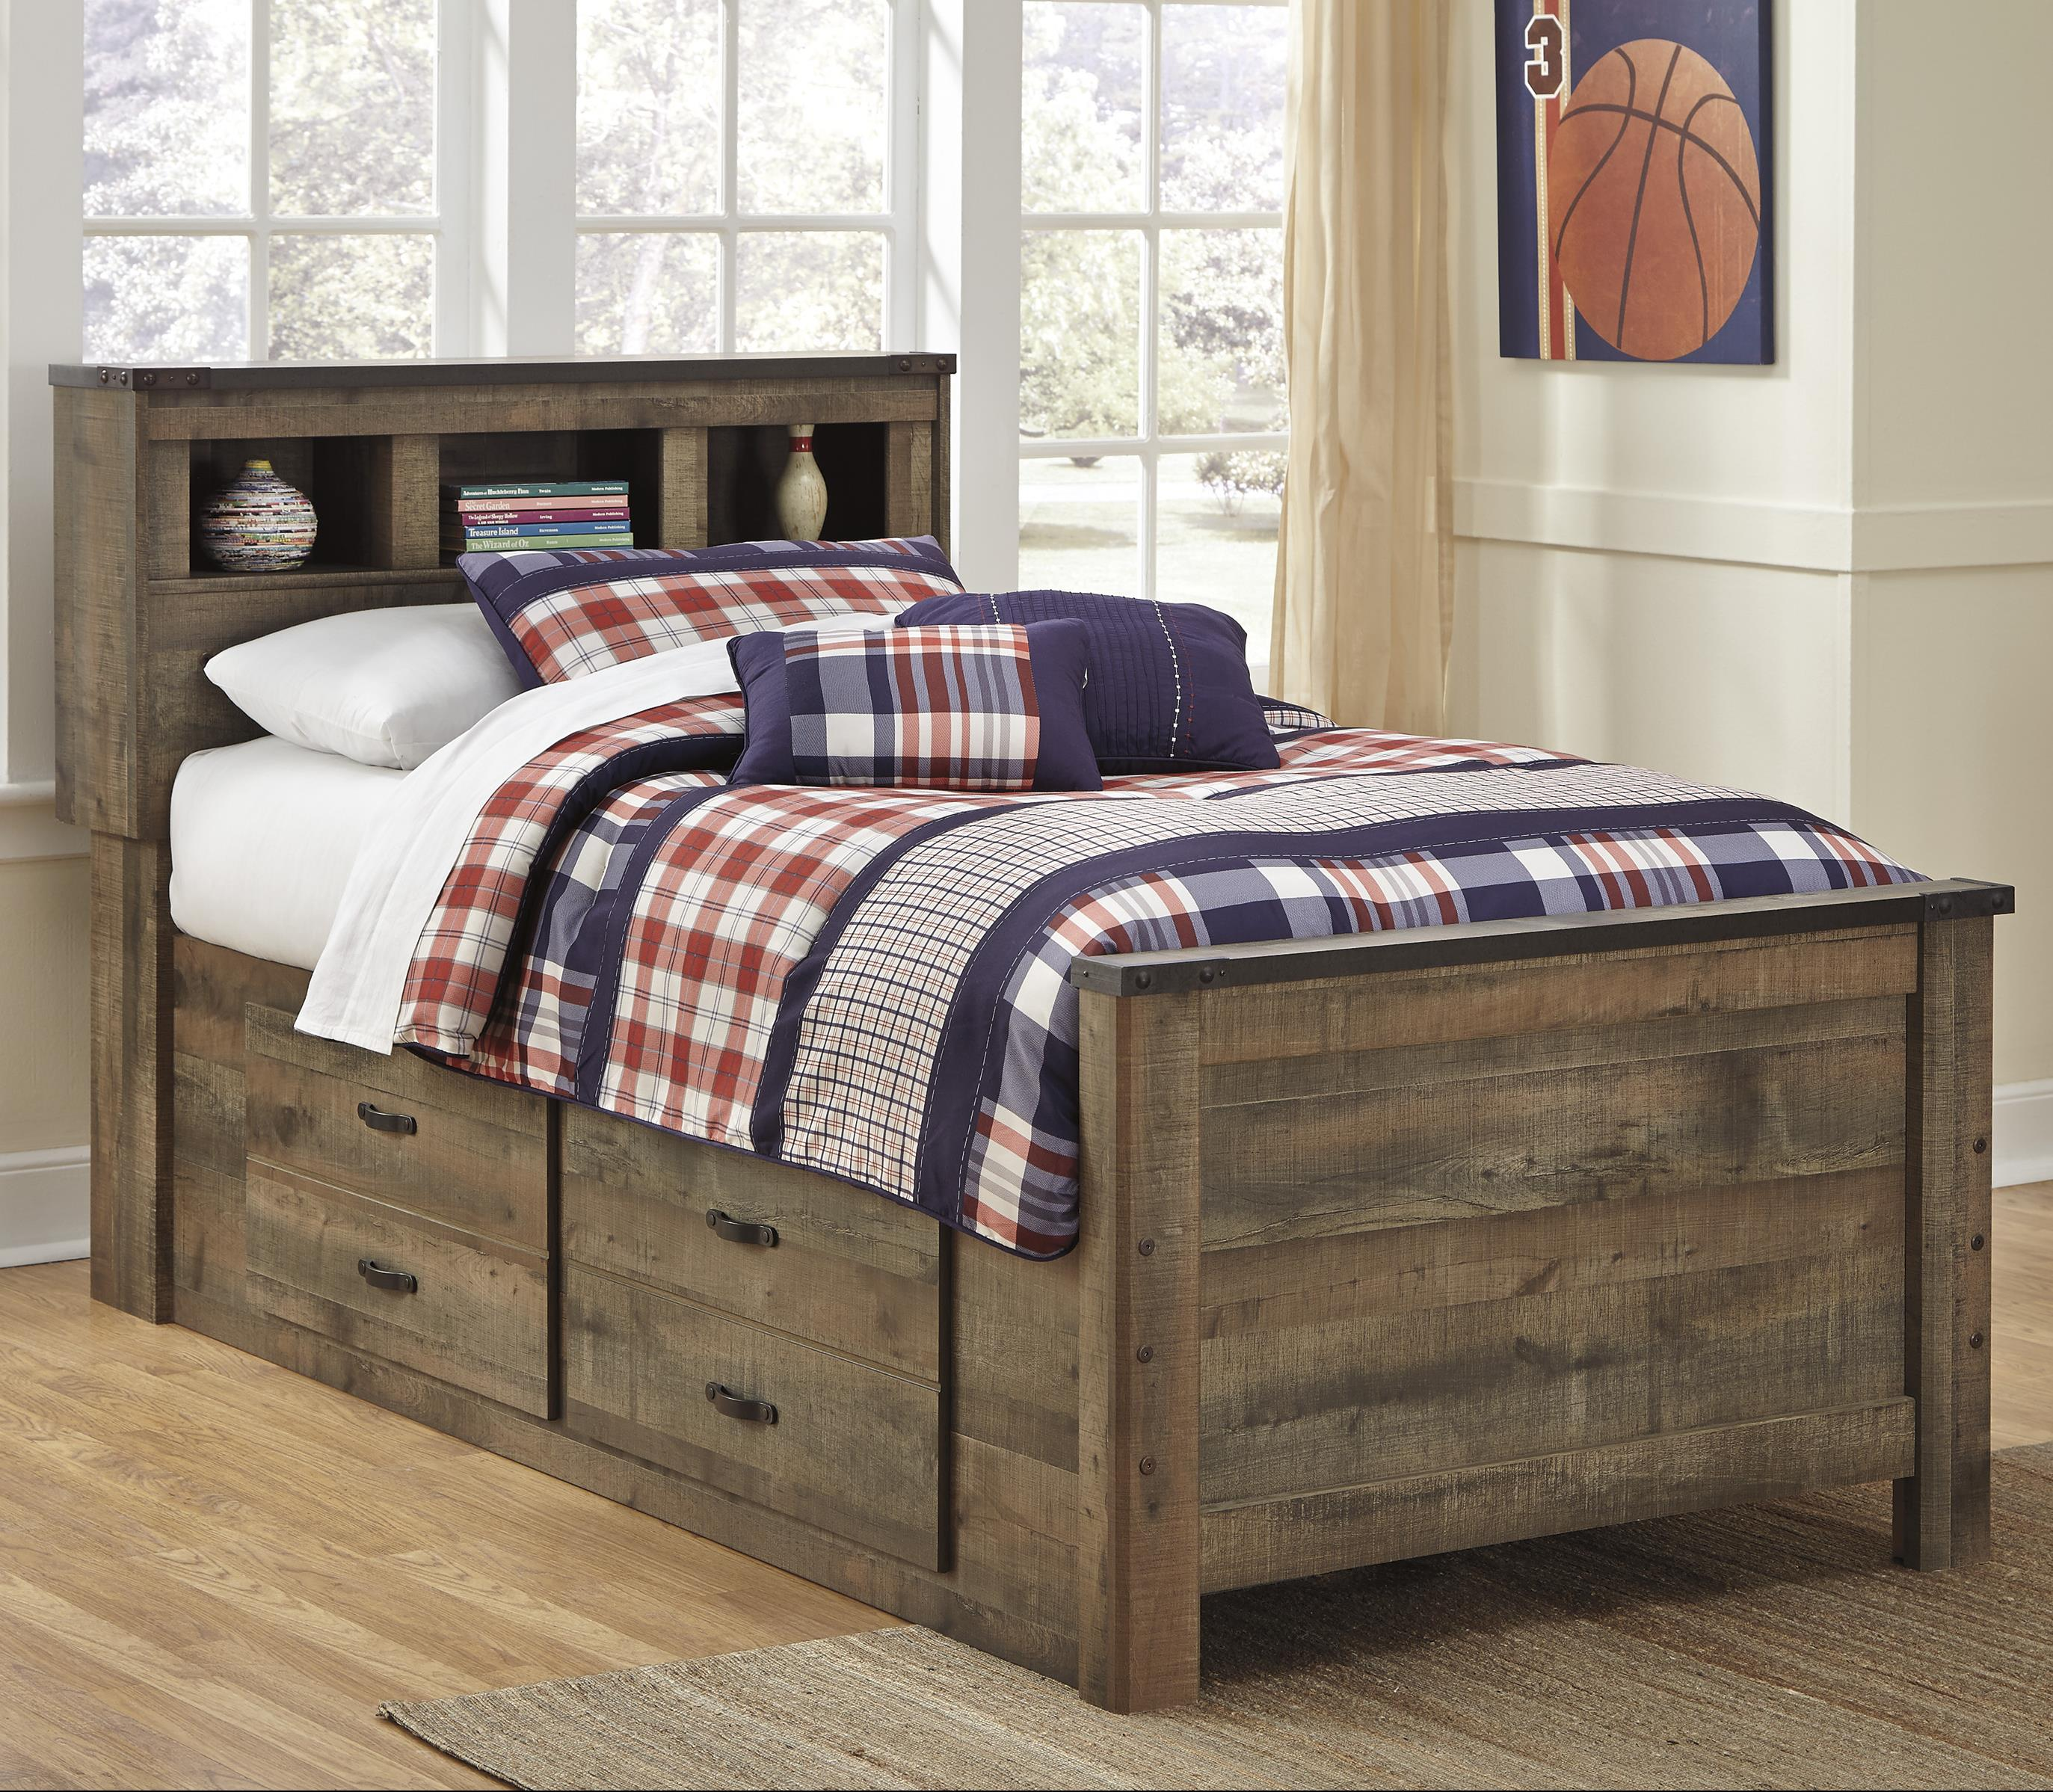 Rustic look twin bookcase bed with under bed storage by signature design by ashley wolf and gardiner wolf furniture